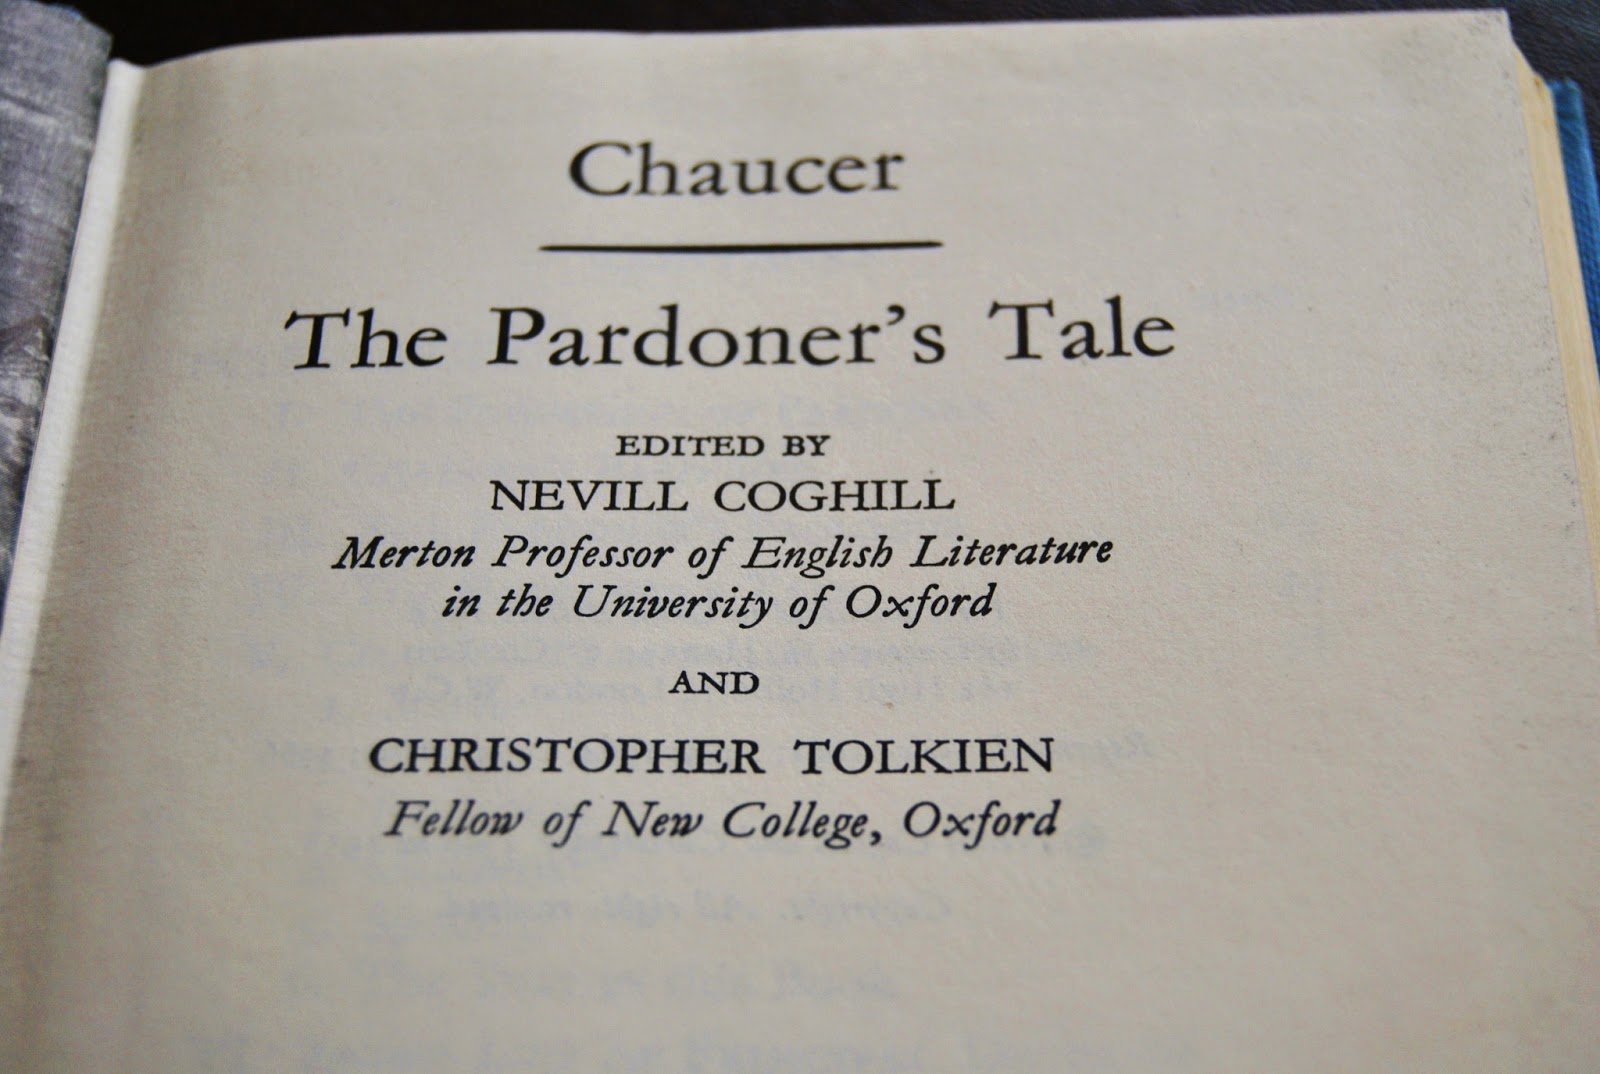 chaucers pardoners tale and the pardoner's The pardoner s tale how can irony be an effective tool to both  the pardoner s tale how can irony be an effective tool to  in the pardoners tale 7 chaucers.